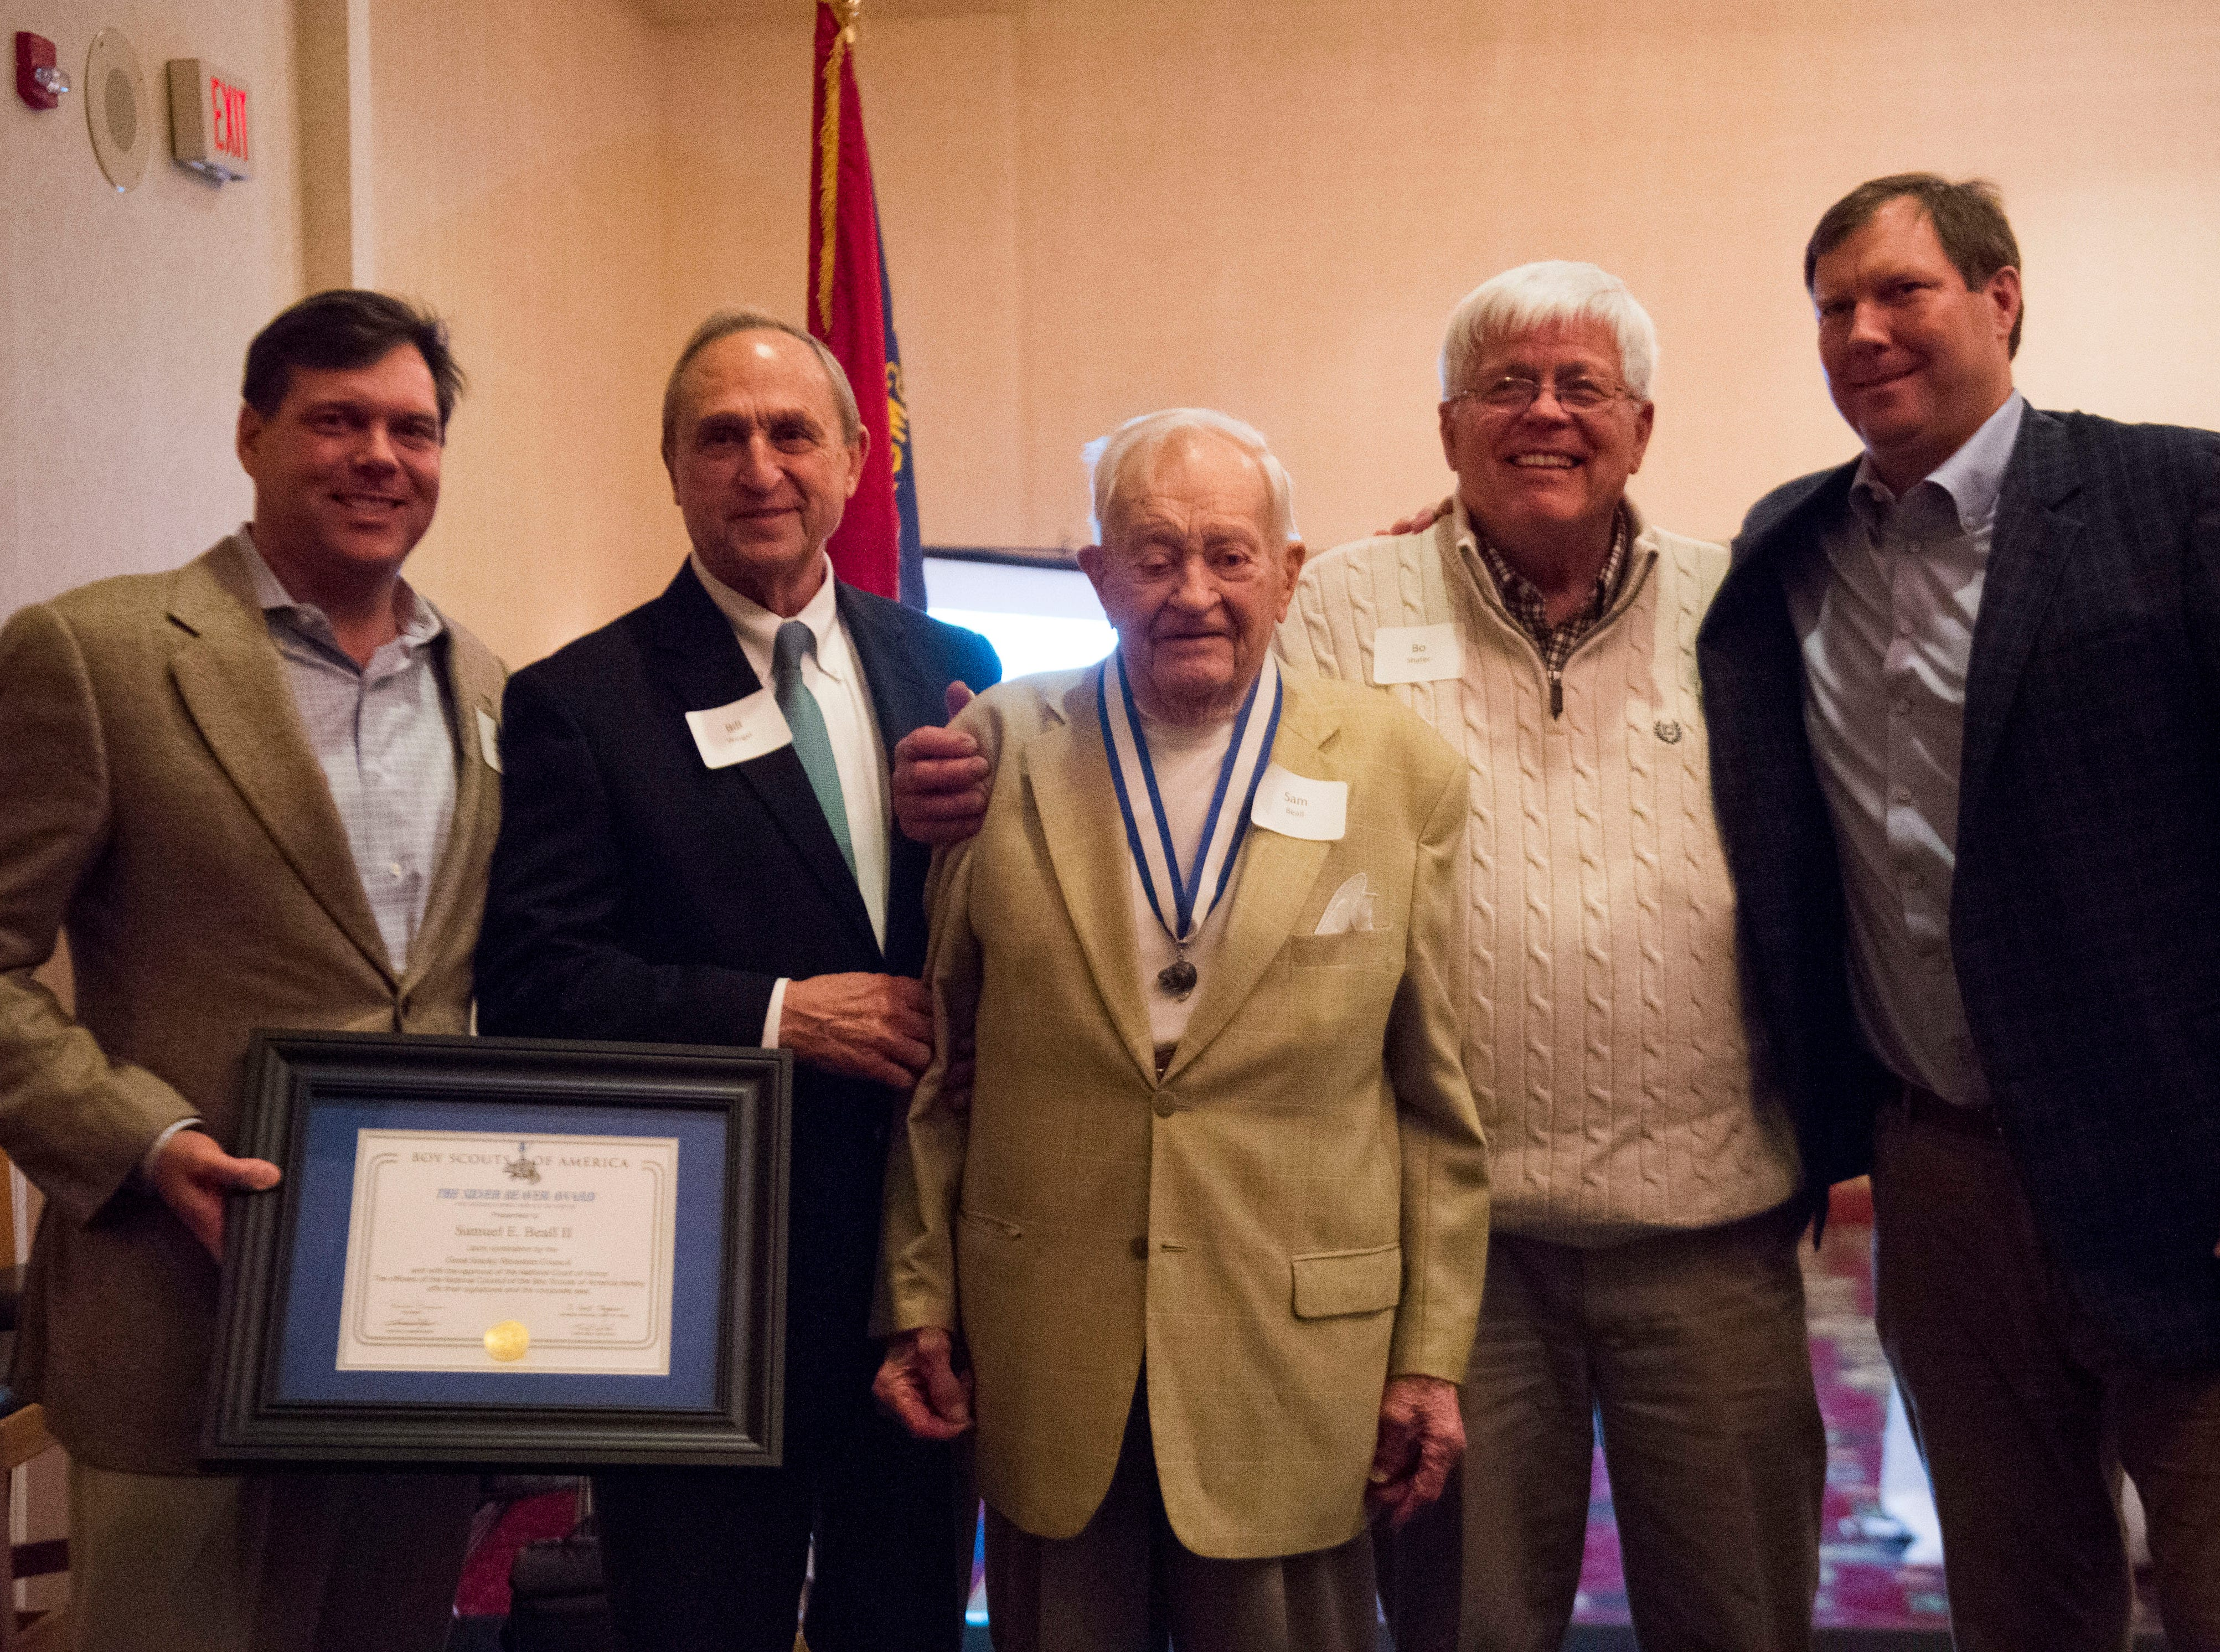 Second from left Bill Weigel, and Sam Beall, amongst others, pose for a photo after Beall was presented the Silver Beaver award at the 2018 Eagle Scout gathering held at Hotel Knoxville Thursday, Nov. 15, 2018.